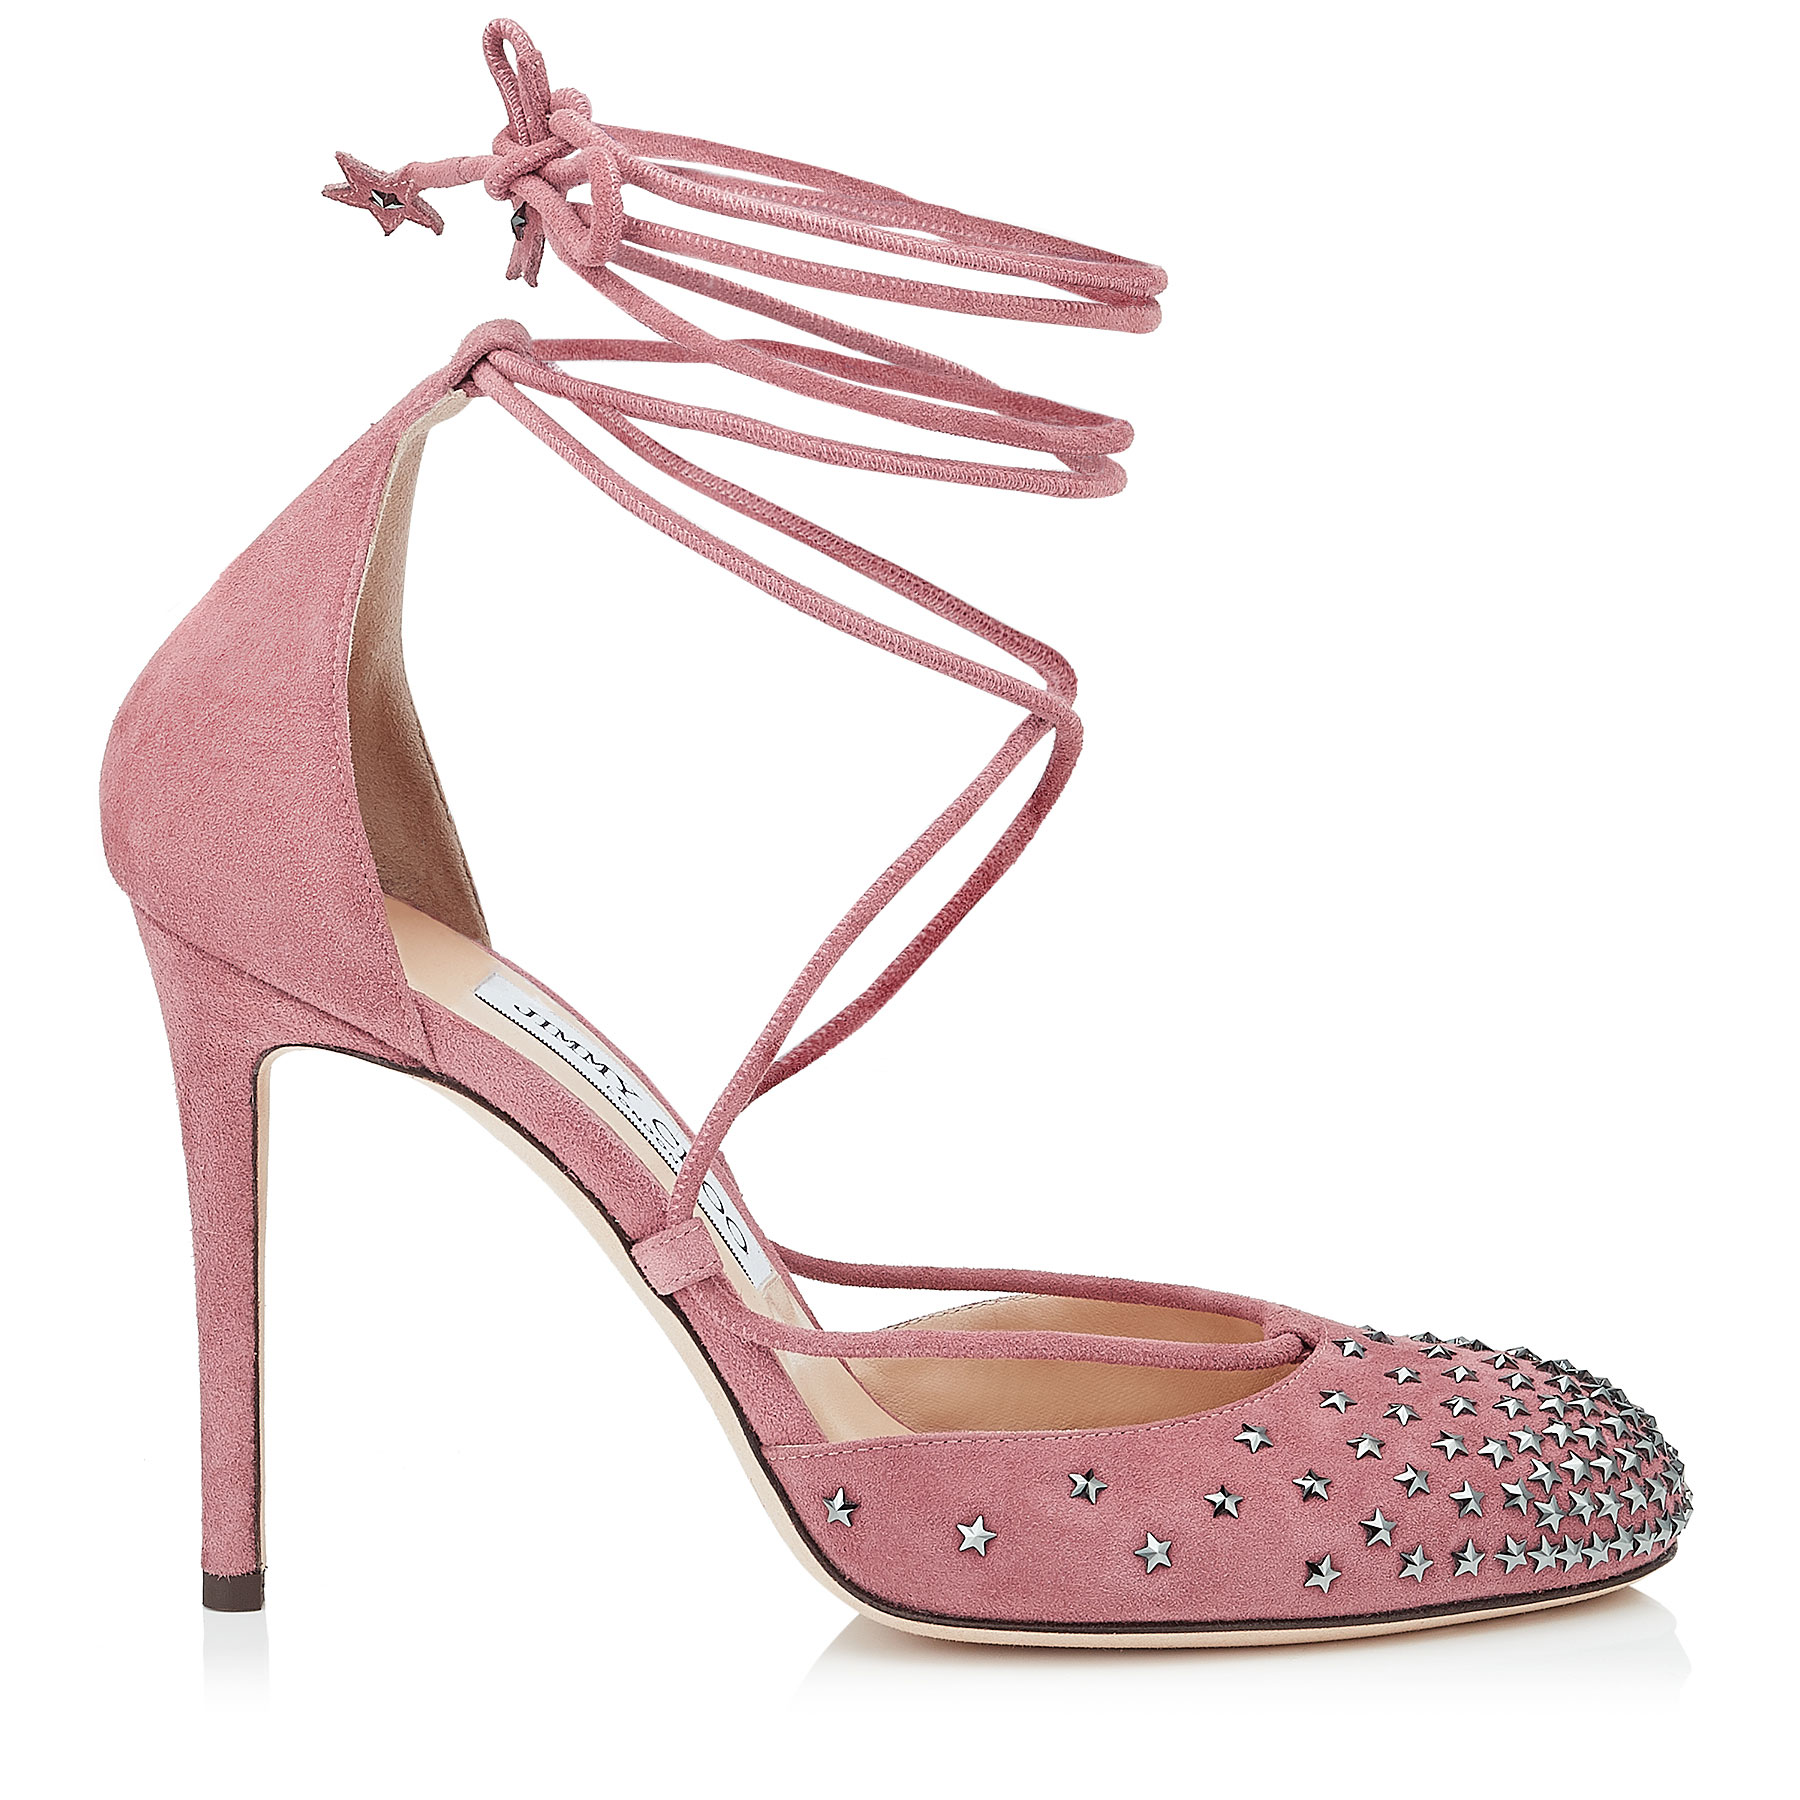 KAMRON 100 Vintage Rose Suede Round Toe Pumps with Dégradé Crystal Stars by Jimmy Choo